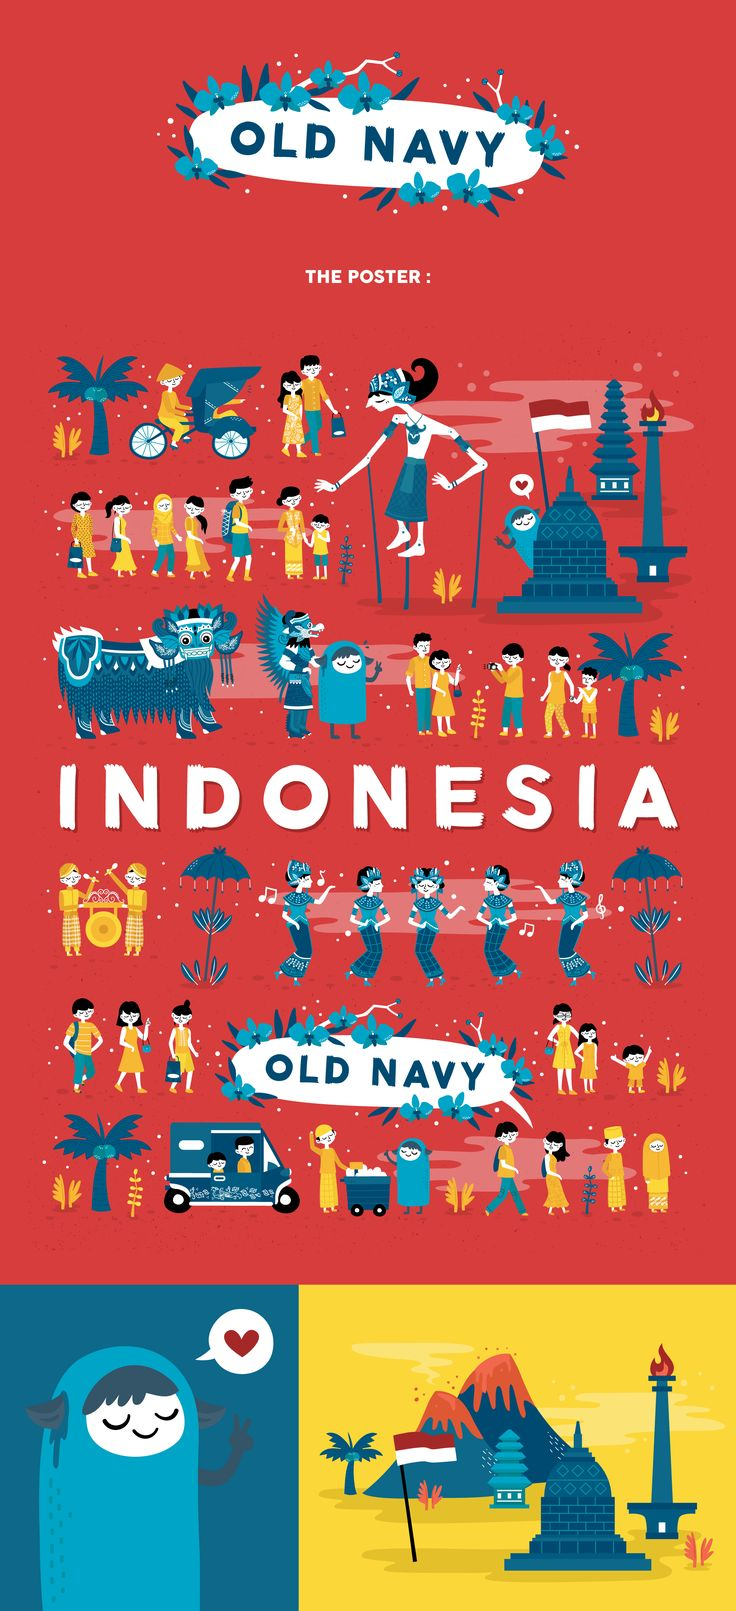 Iconic Country Poster : IndonesiaClient : Old Navy, USArt Director : Jonathan HessMain Colour : Red - Indonesia's National Colour from their flagItems (Things that represent Indonesia) :Wayang kulit Festival DancersGong playerVillage PeopleBeca…